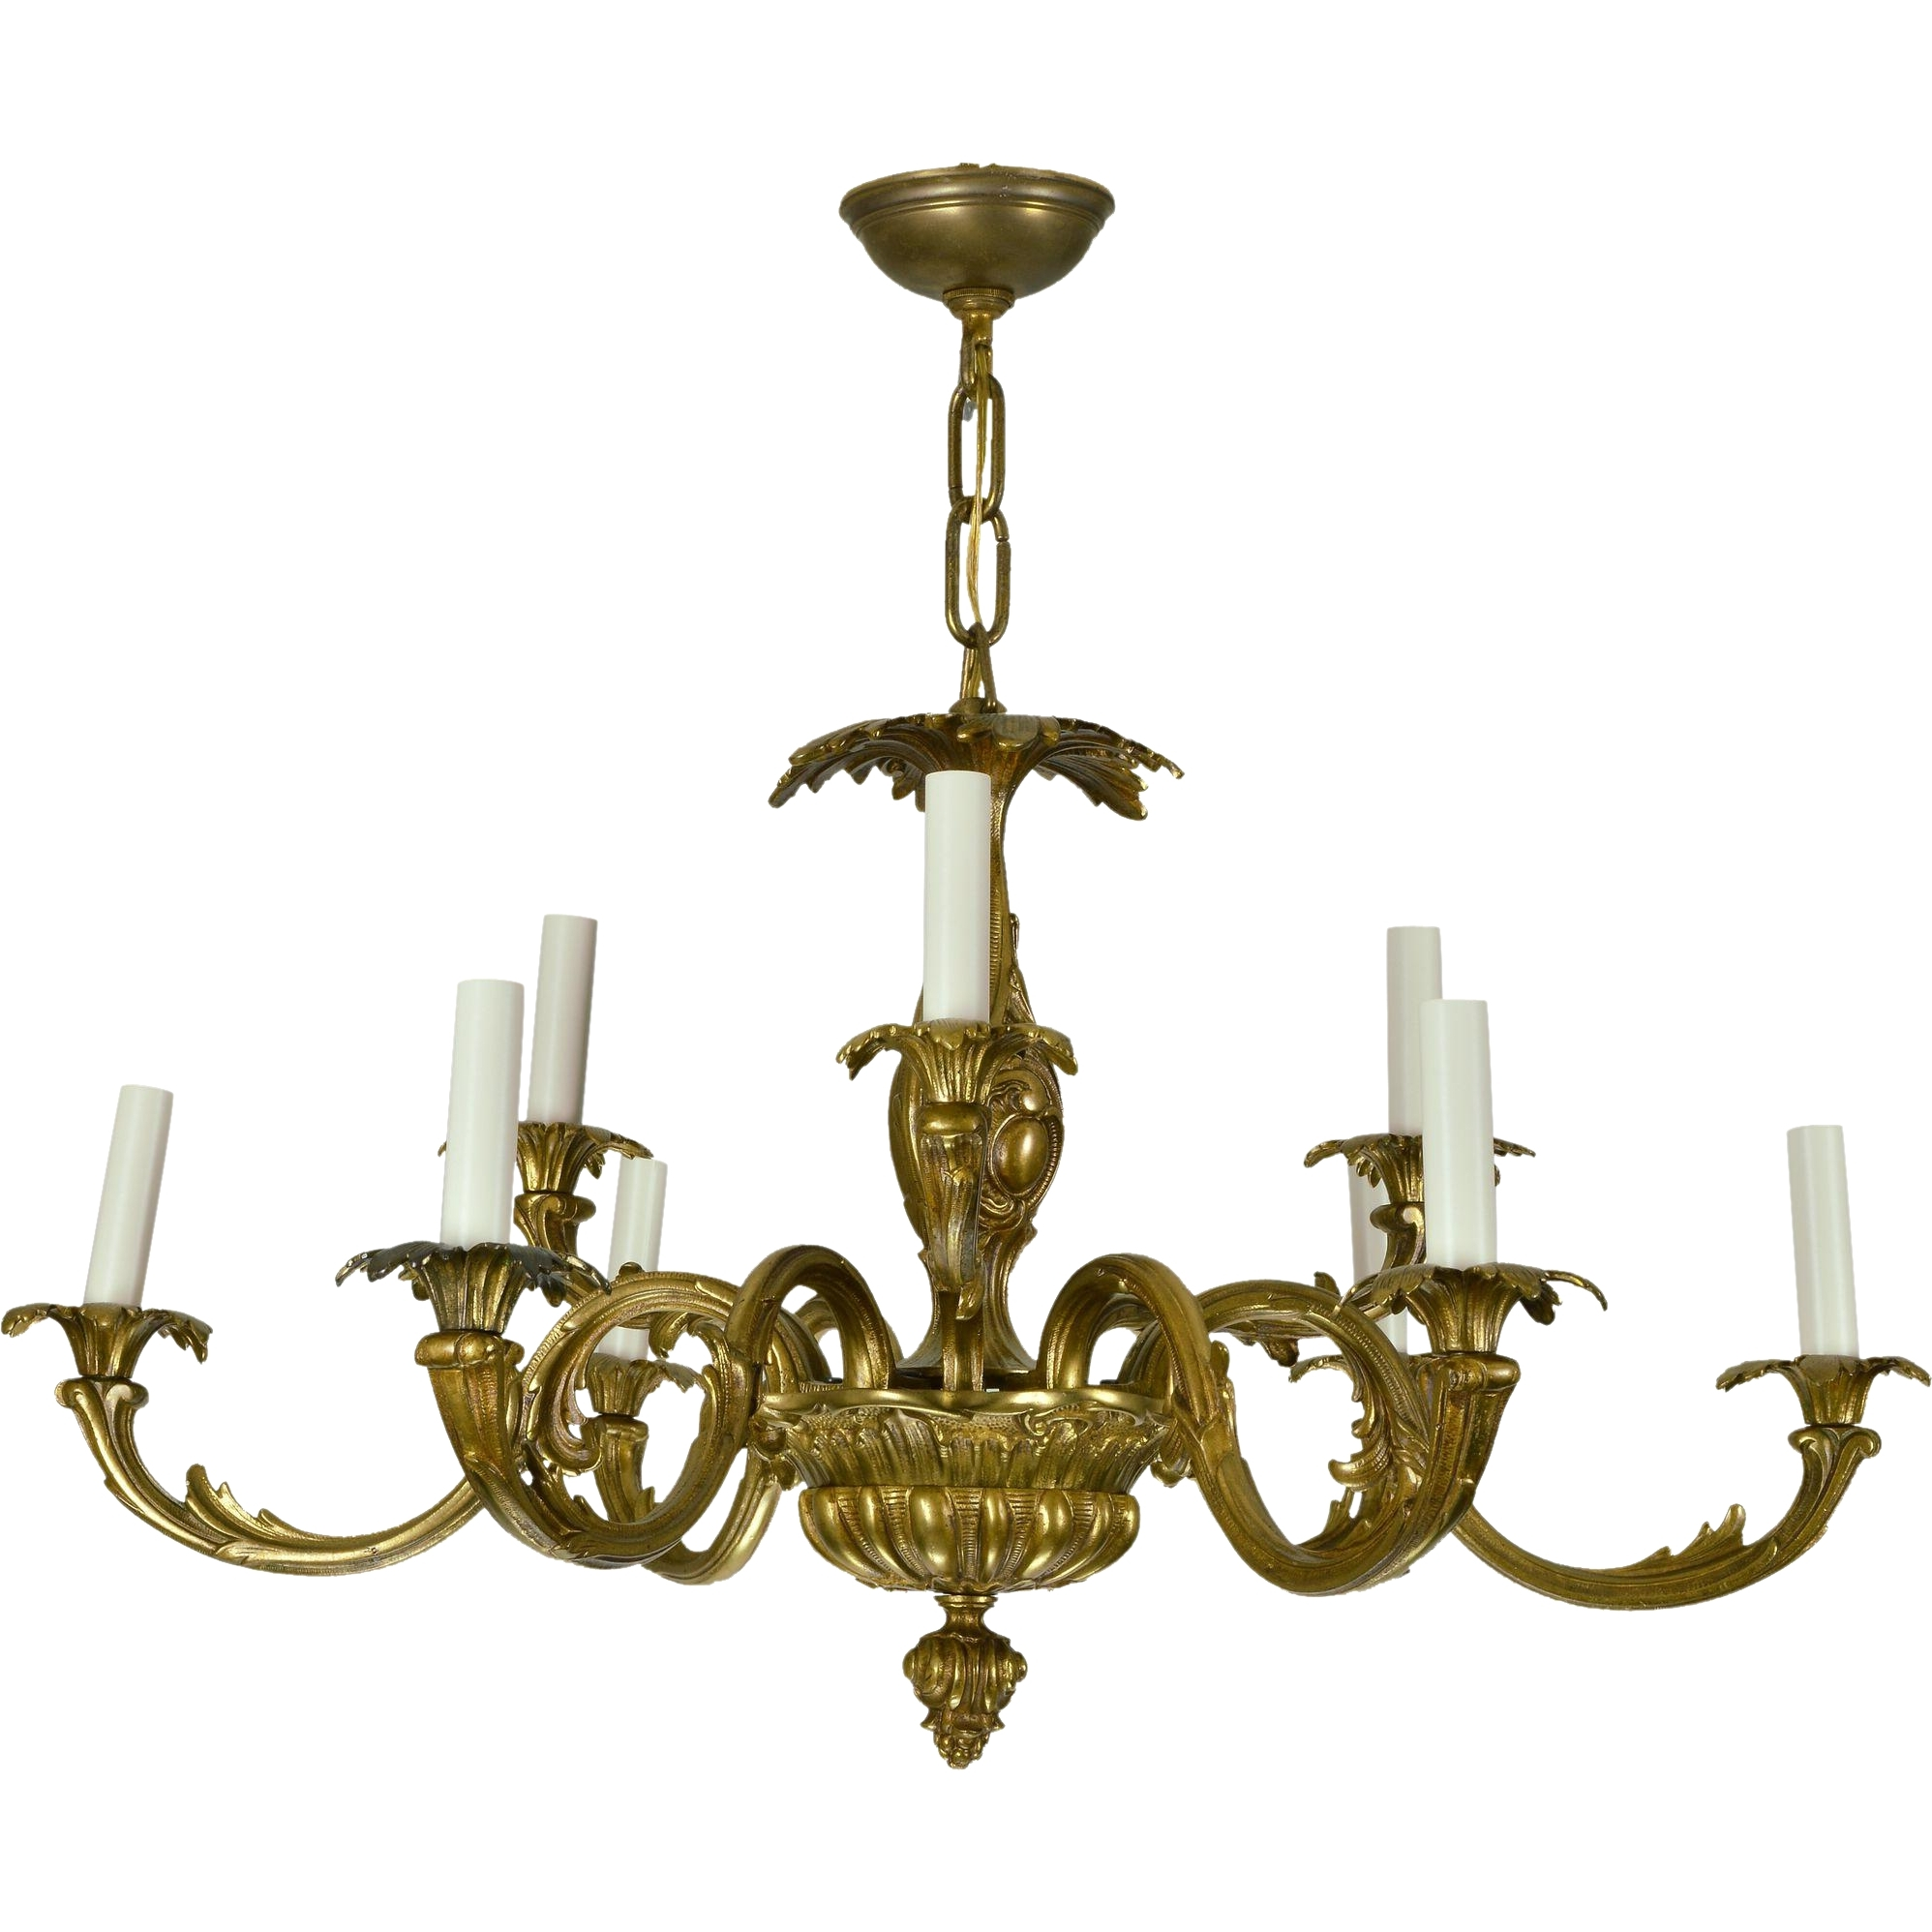 Home Design : Graceful Antique Brass Chandeliers Vintage Chandelier Throughout Most Recently Released Old Brass Chandeliers (View 7 of 20)